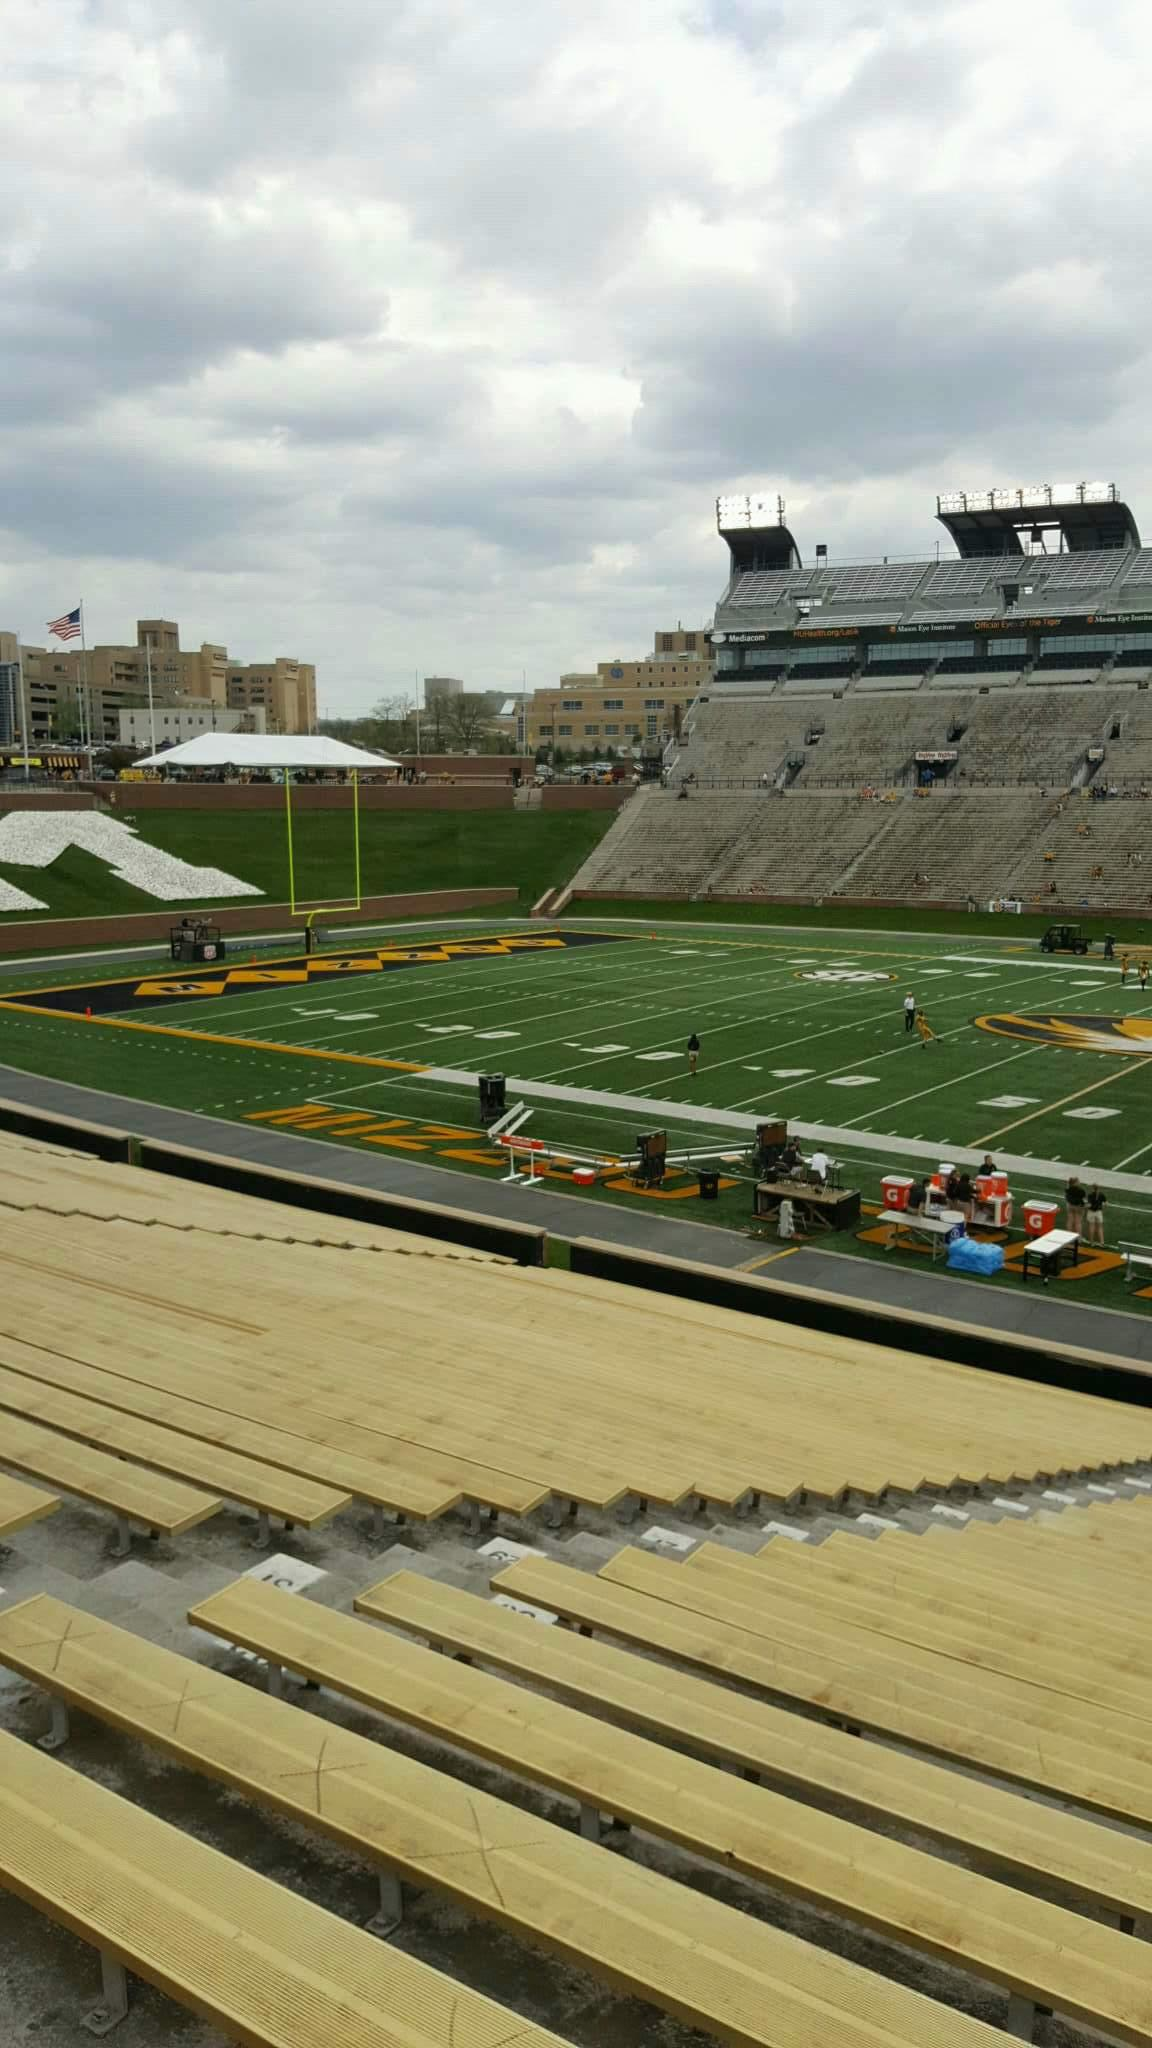 Faurot Field Section 122 Row 37 Seat 25